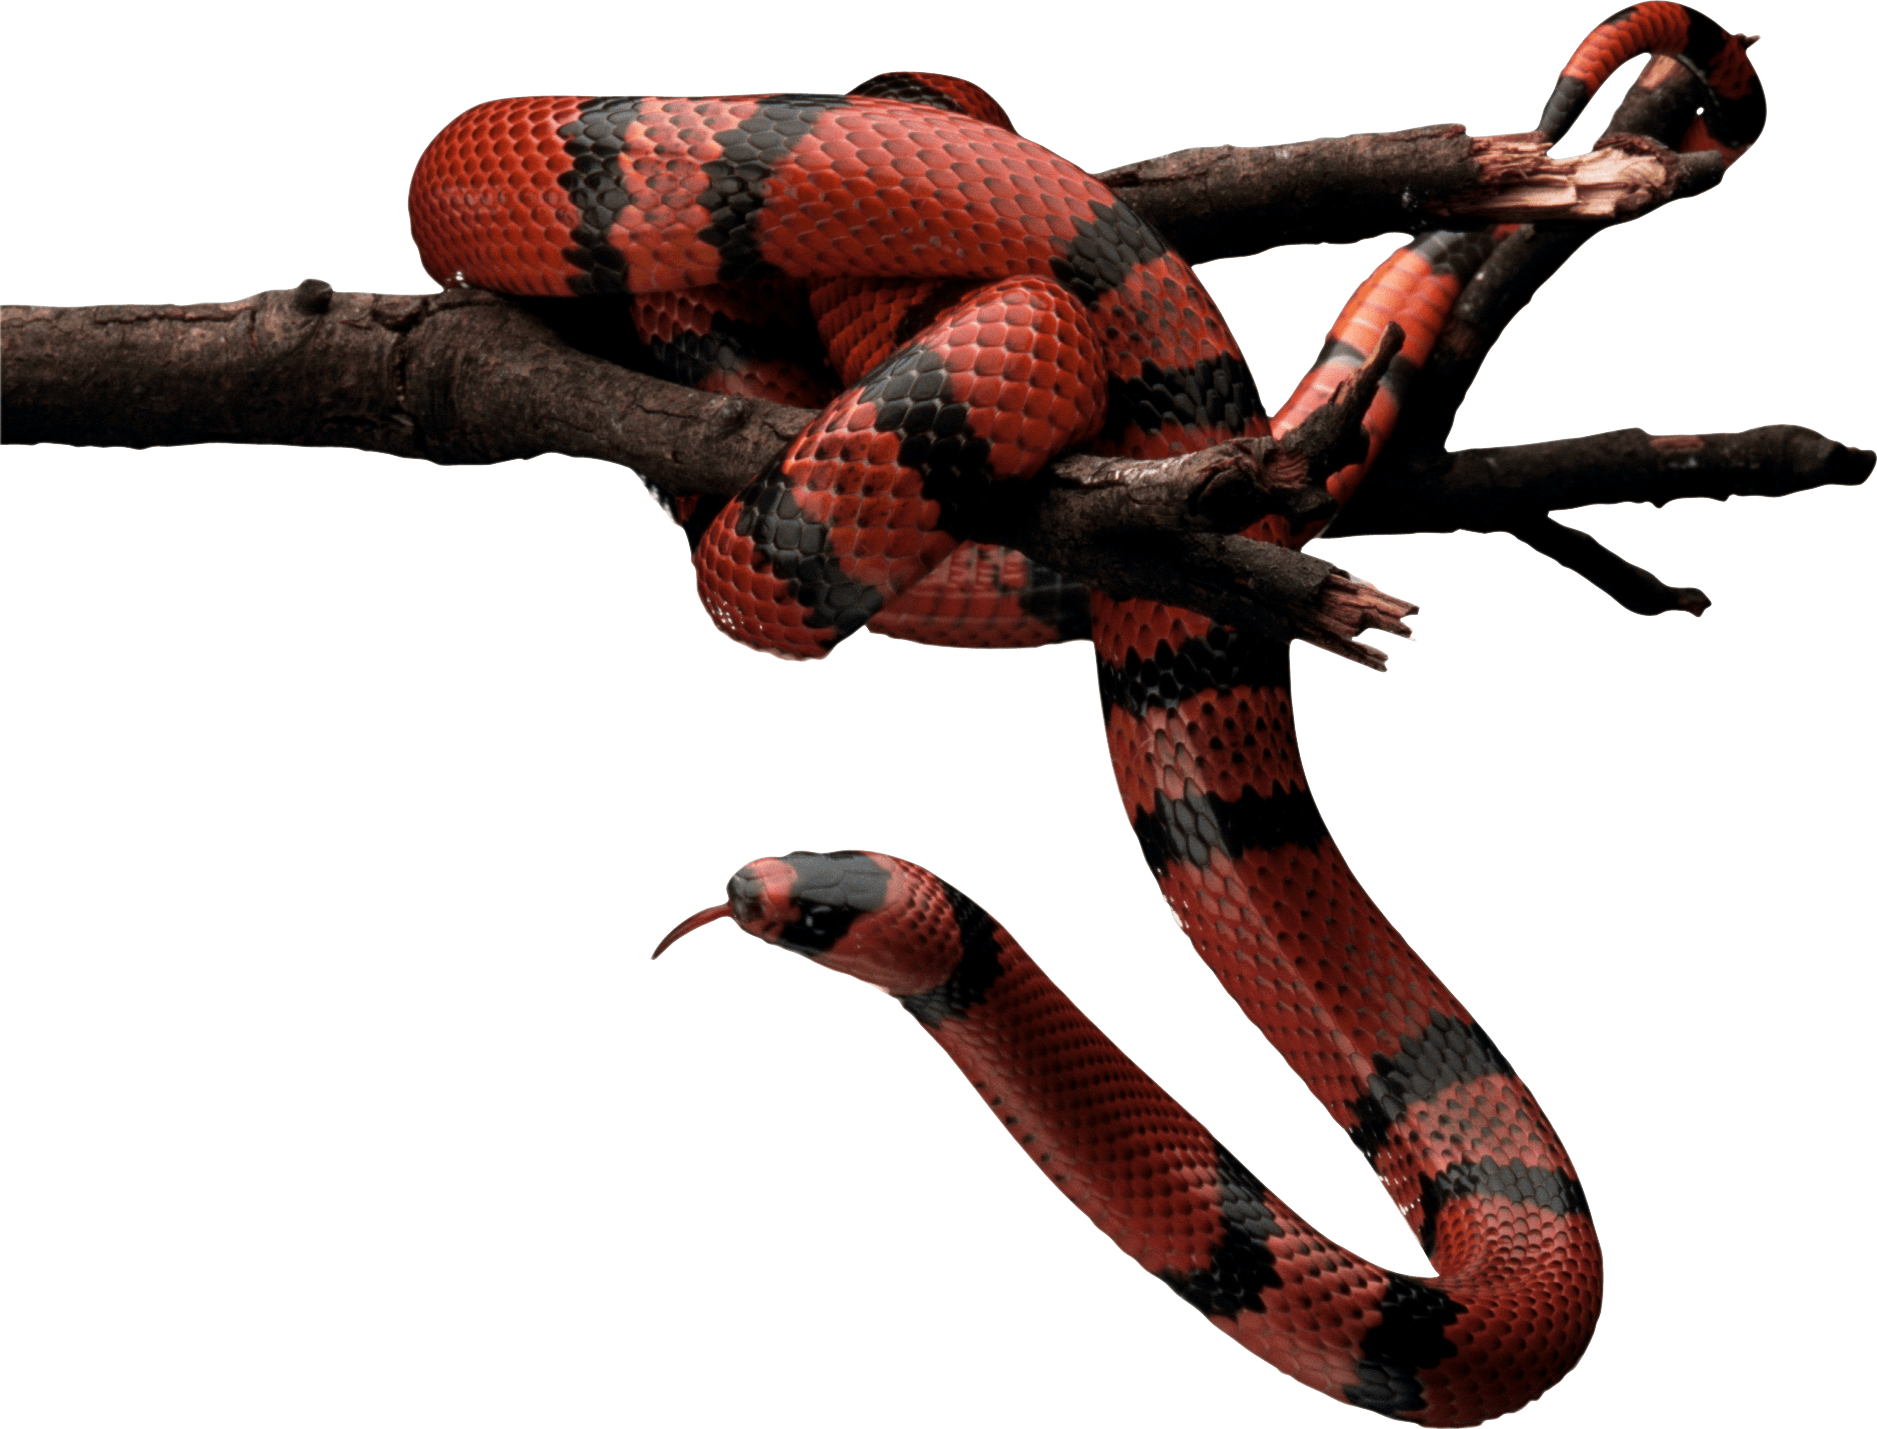 Red and Black Snake on tree PNG Image